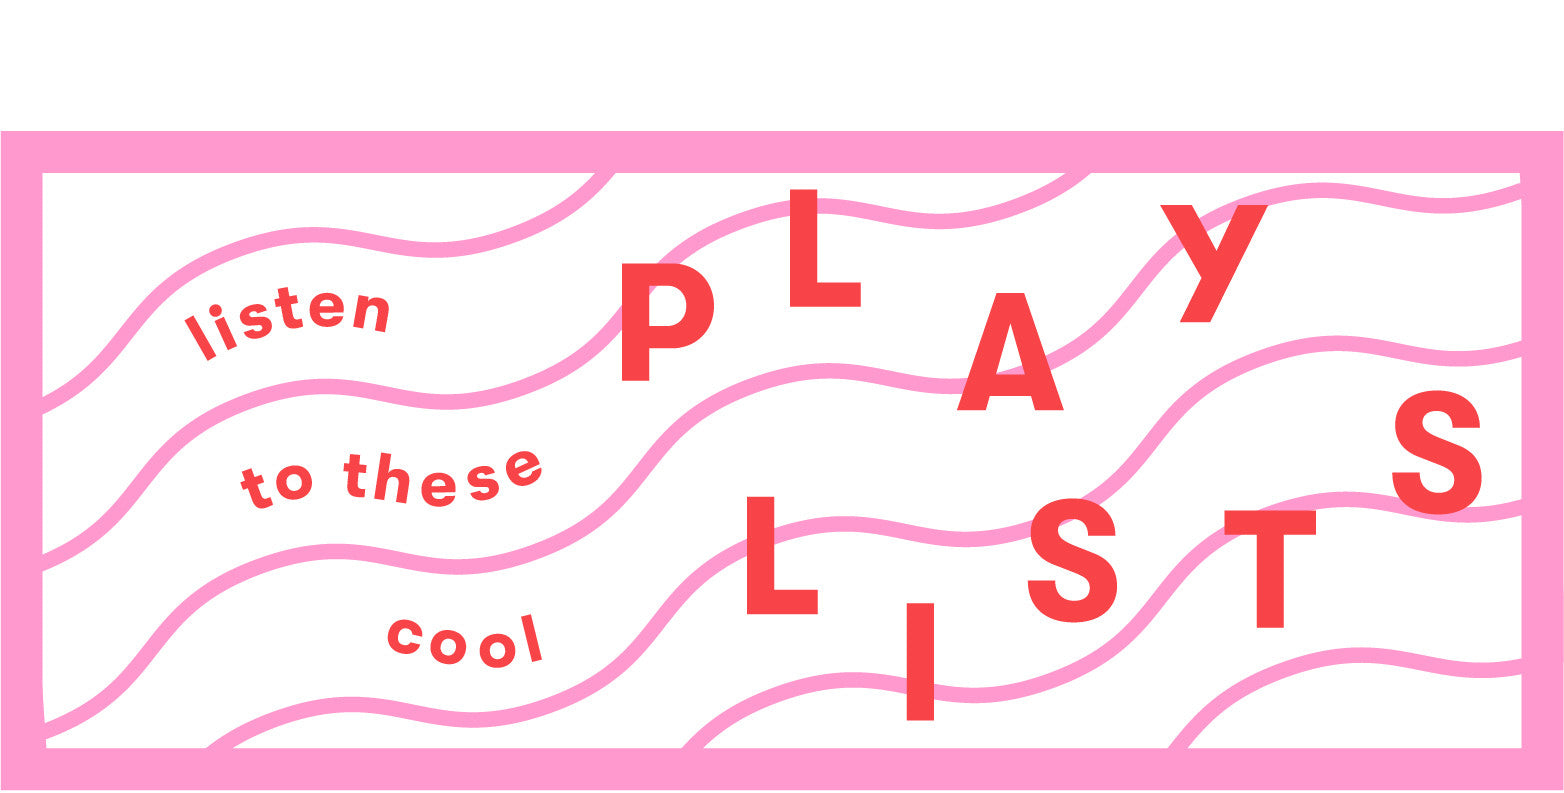 listen to these cool playlists